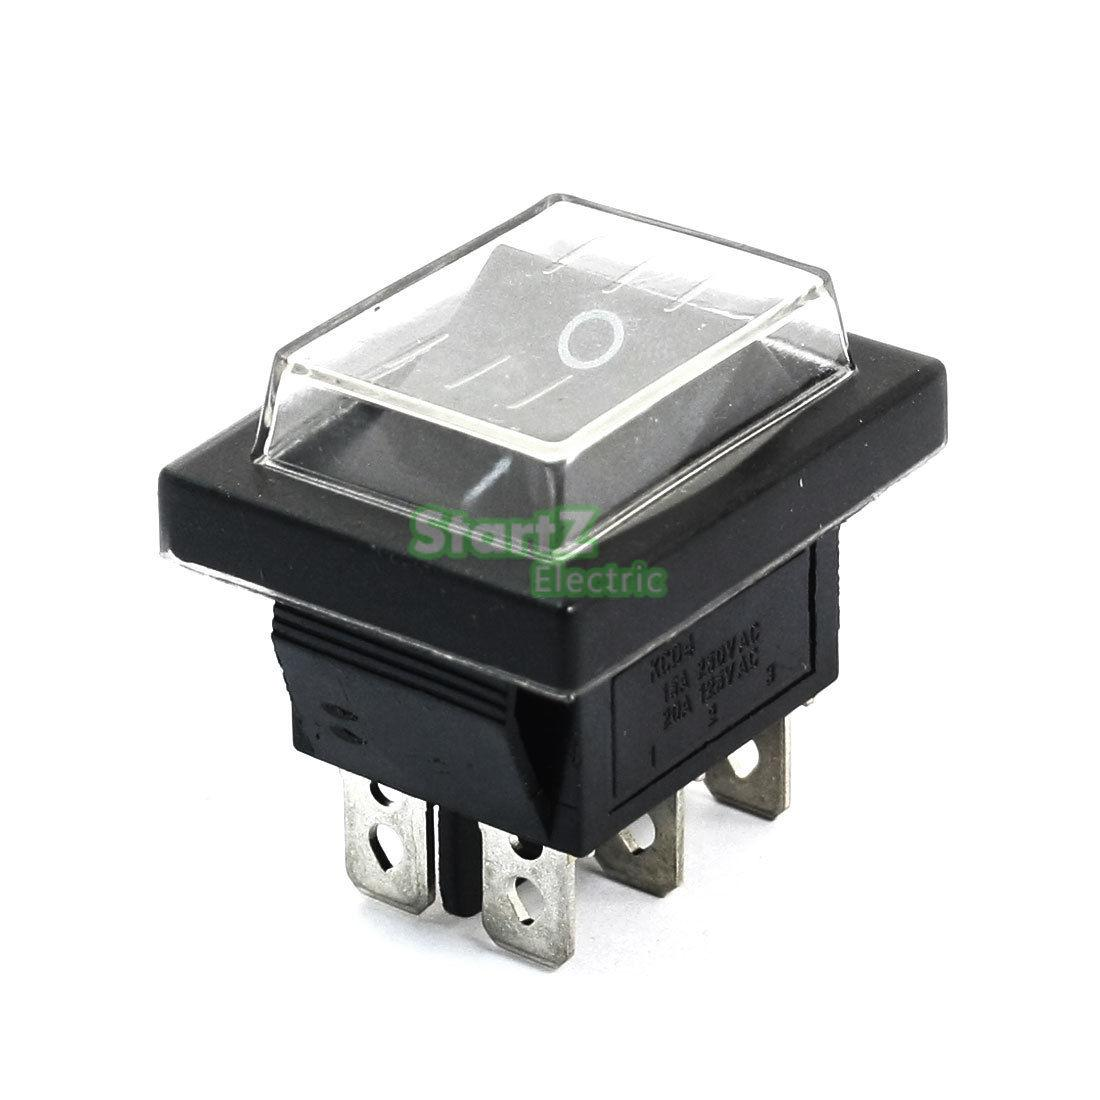 5pcs  AC250V 16A 125V 20A DPDT 6Pin 2-Position Rocker Switch w Waterproof Cover stroke of midnight